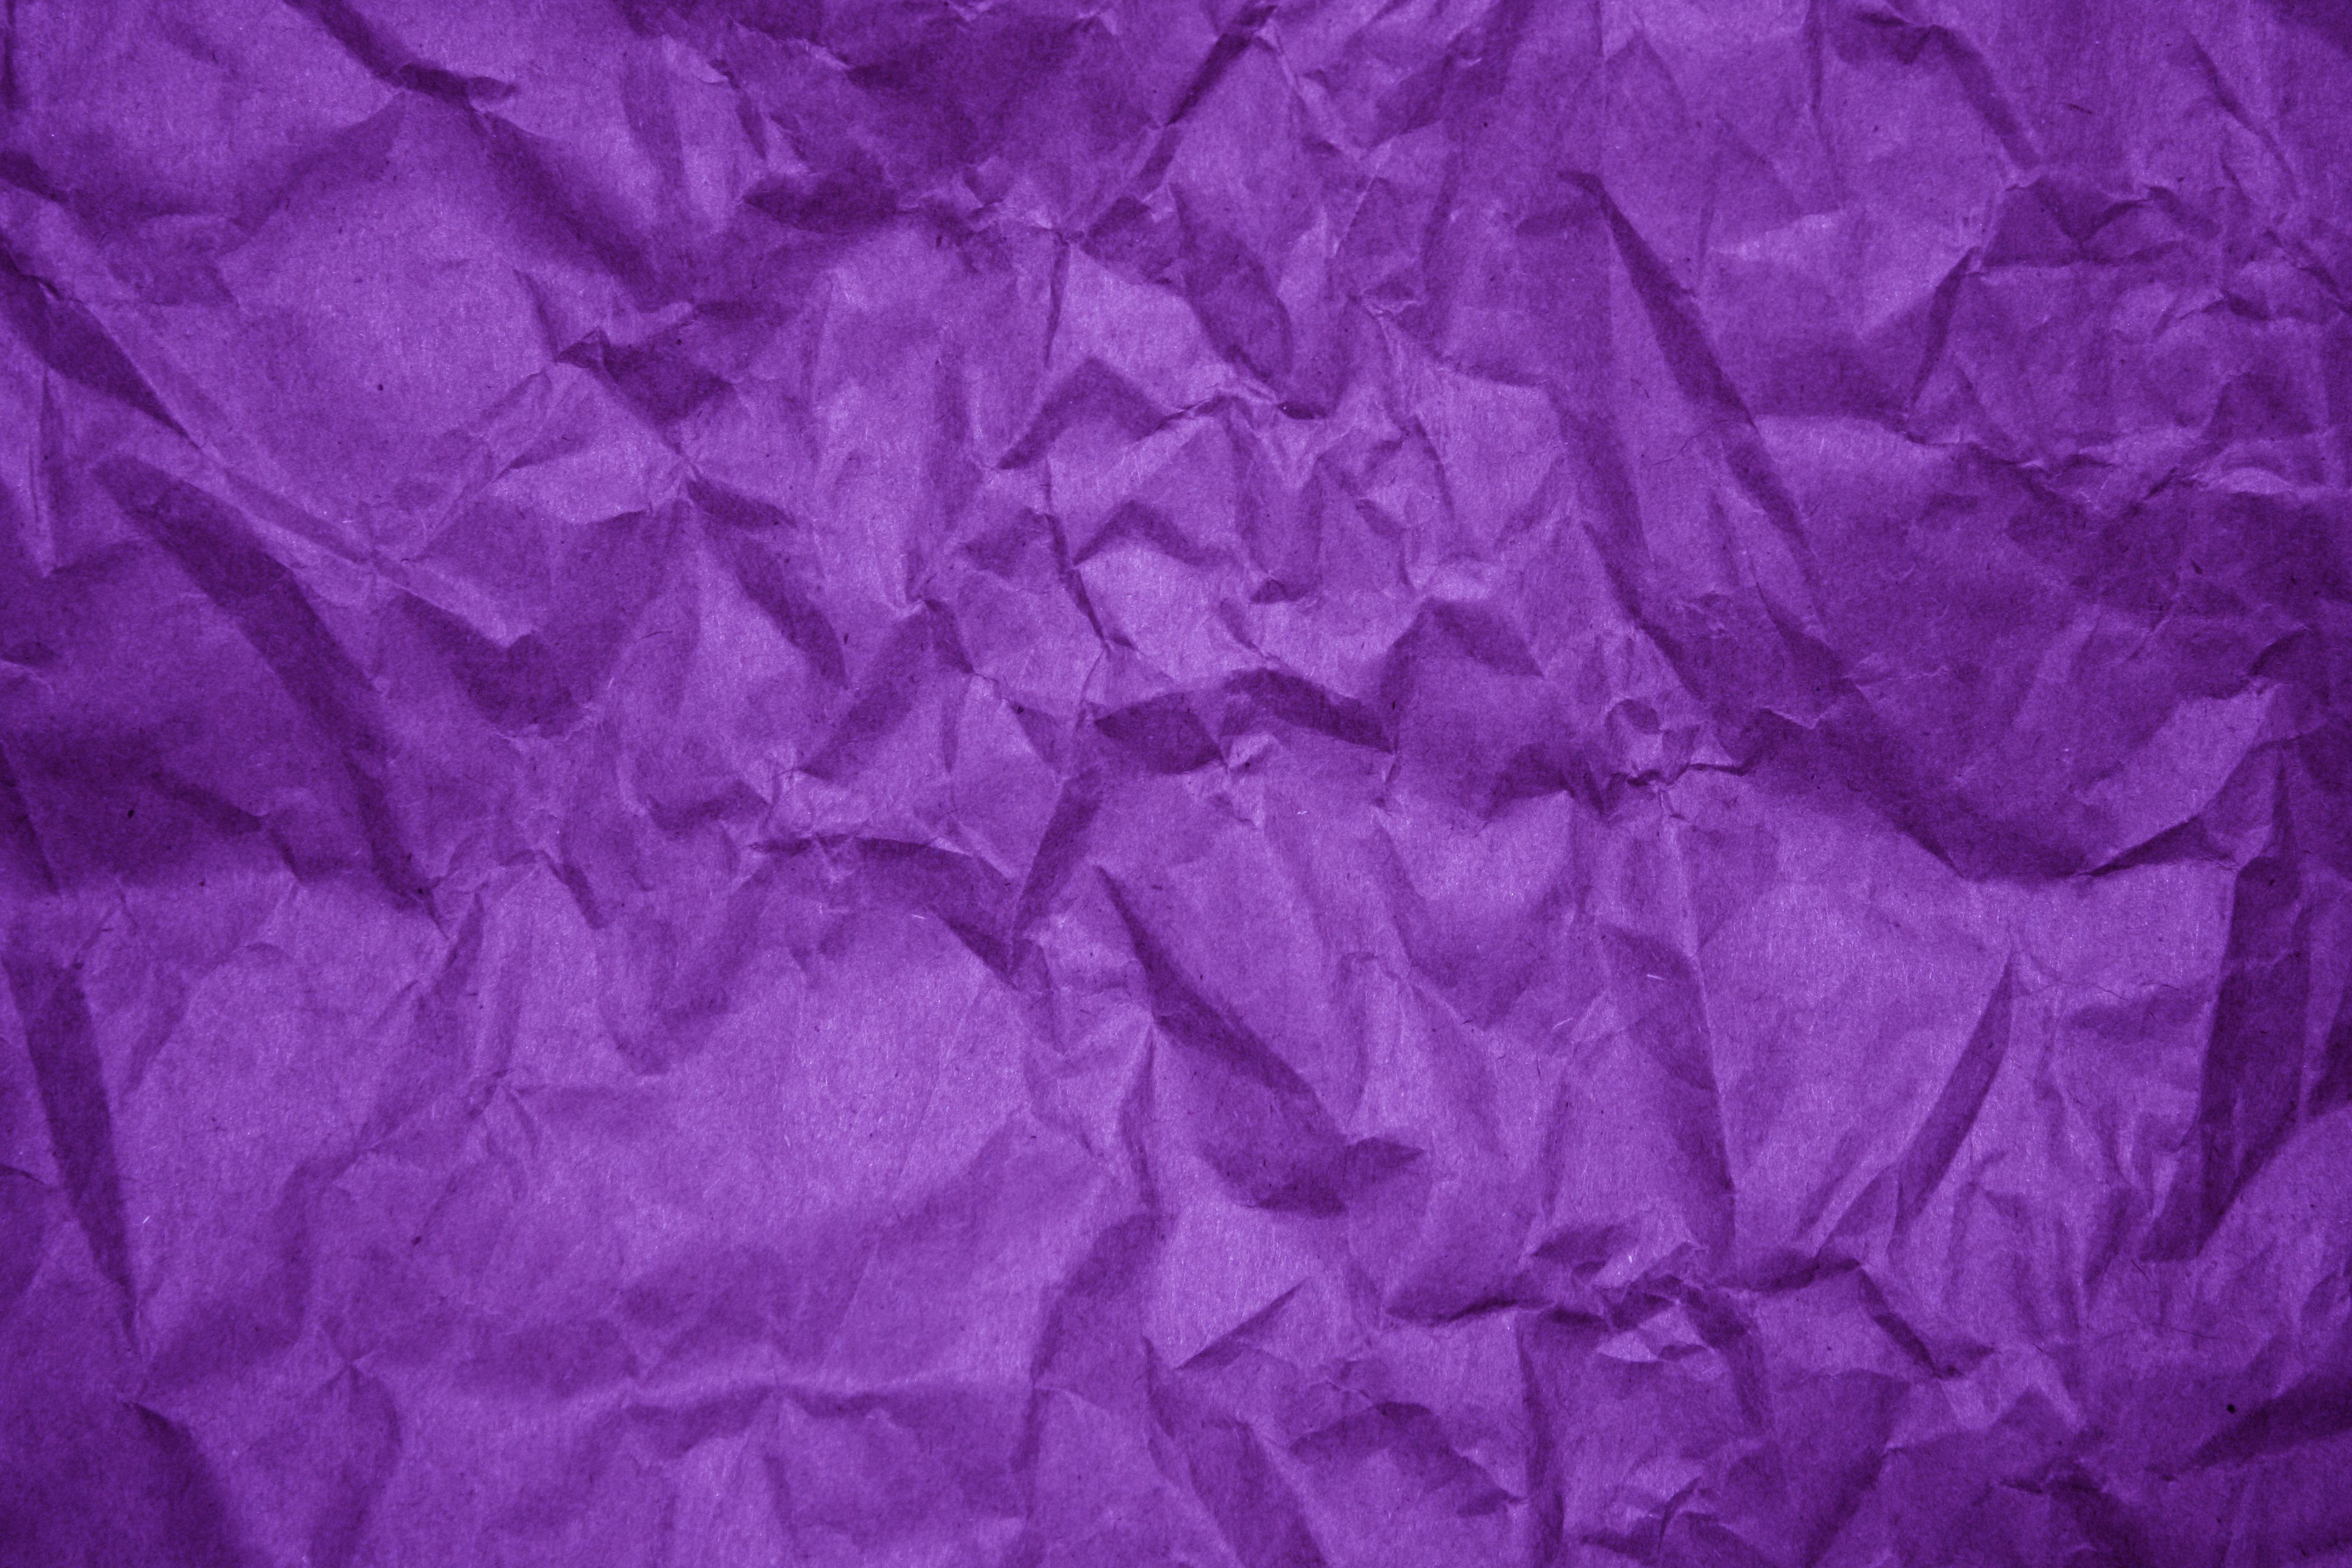 crumpled paper background In today's video, we will learn how to create a cool crumpled paper background we can then use this background to create a typographic poster for example.